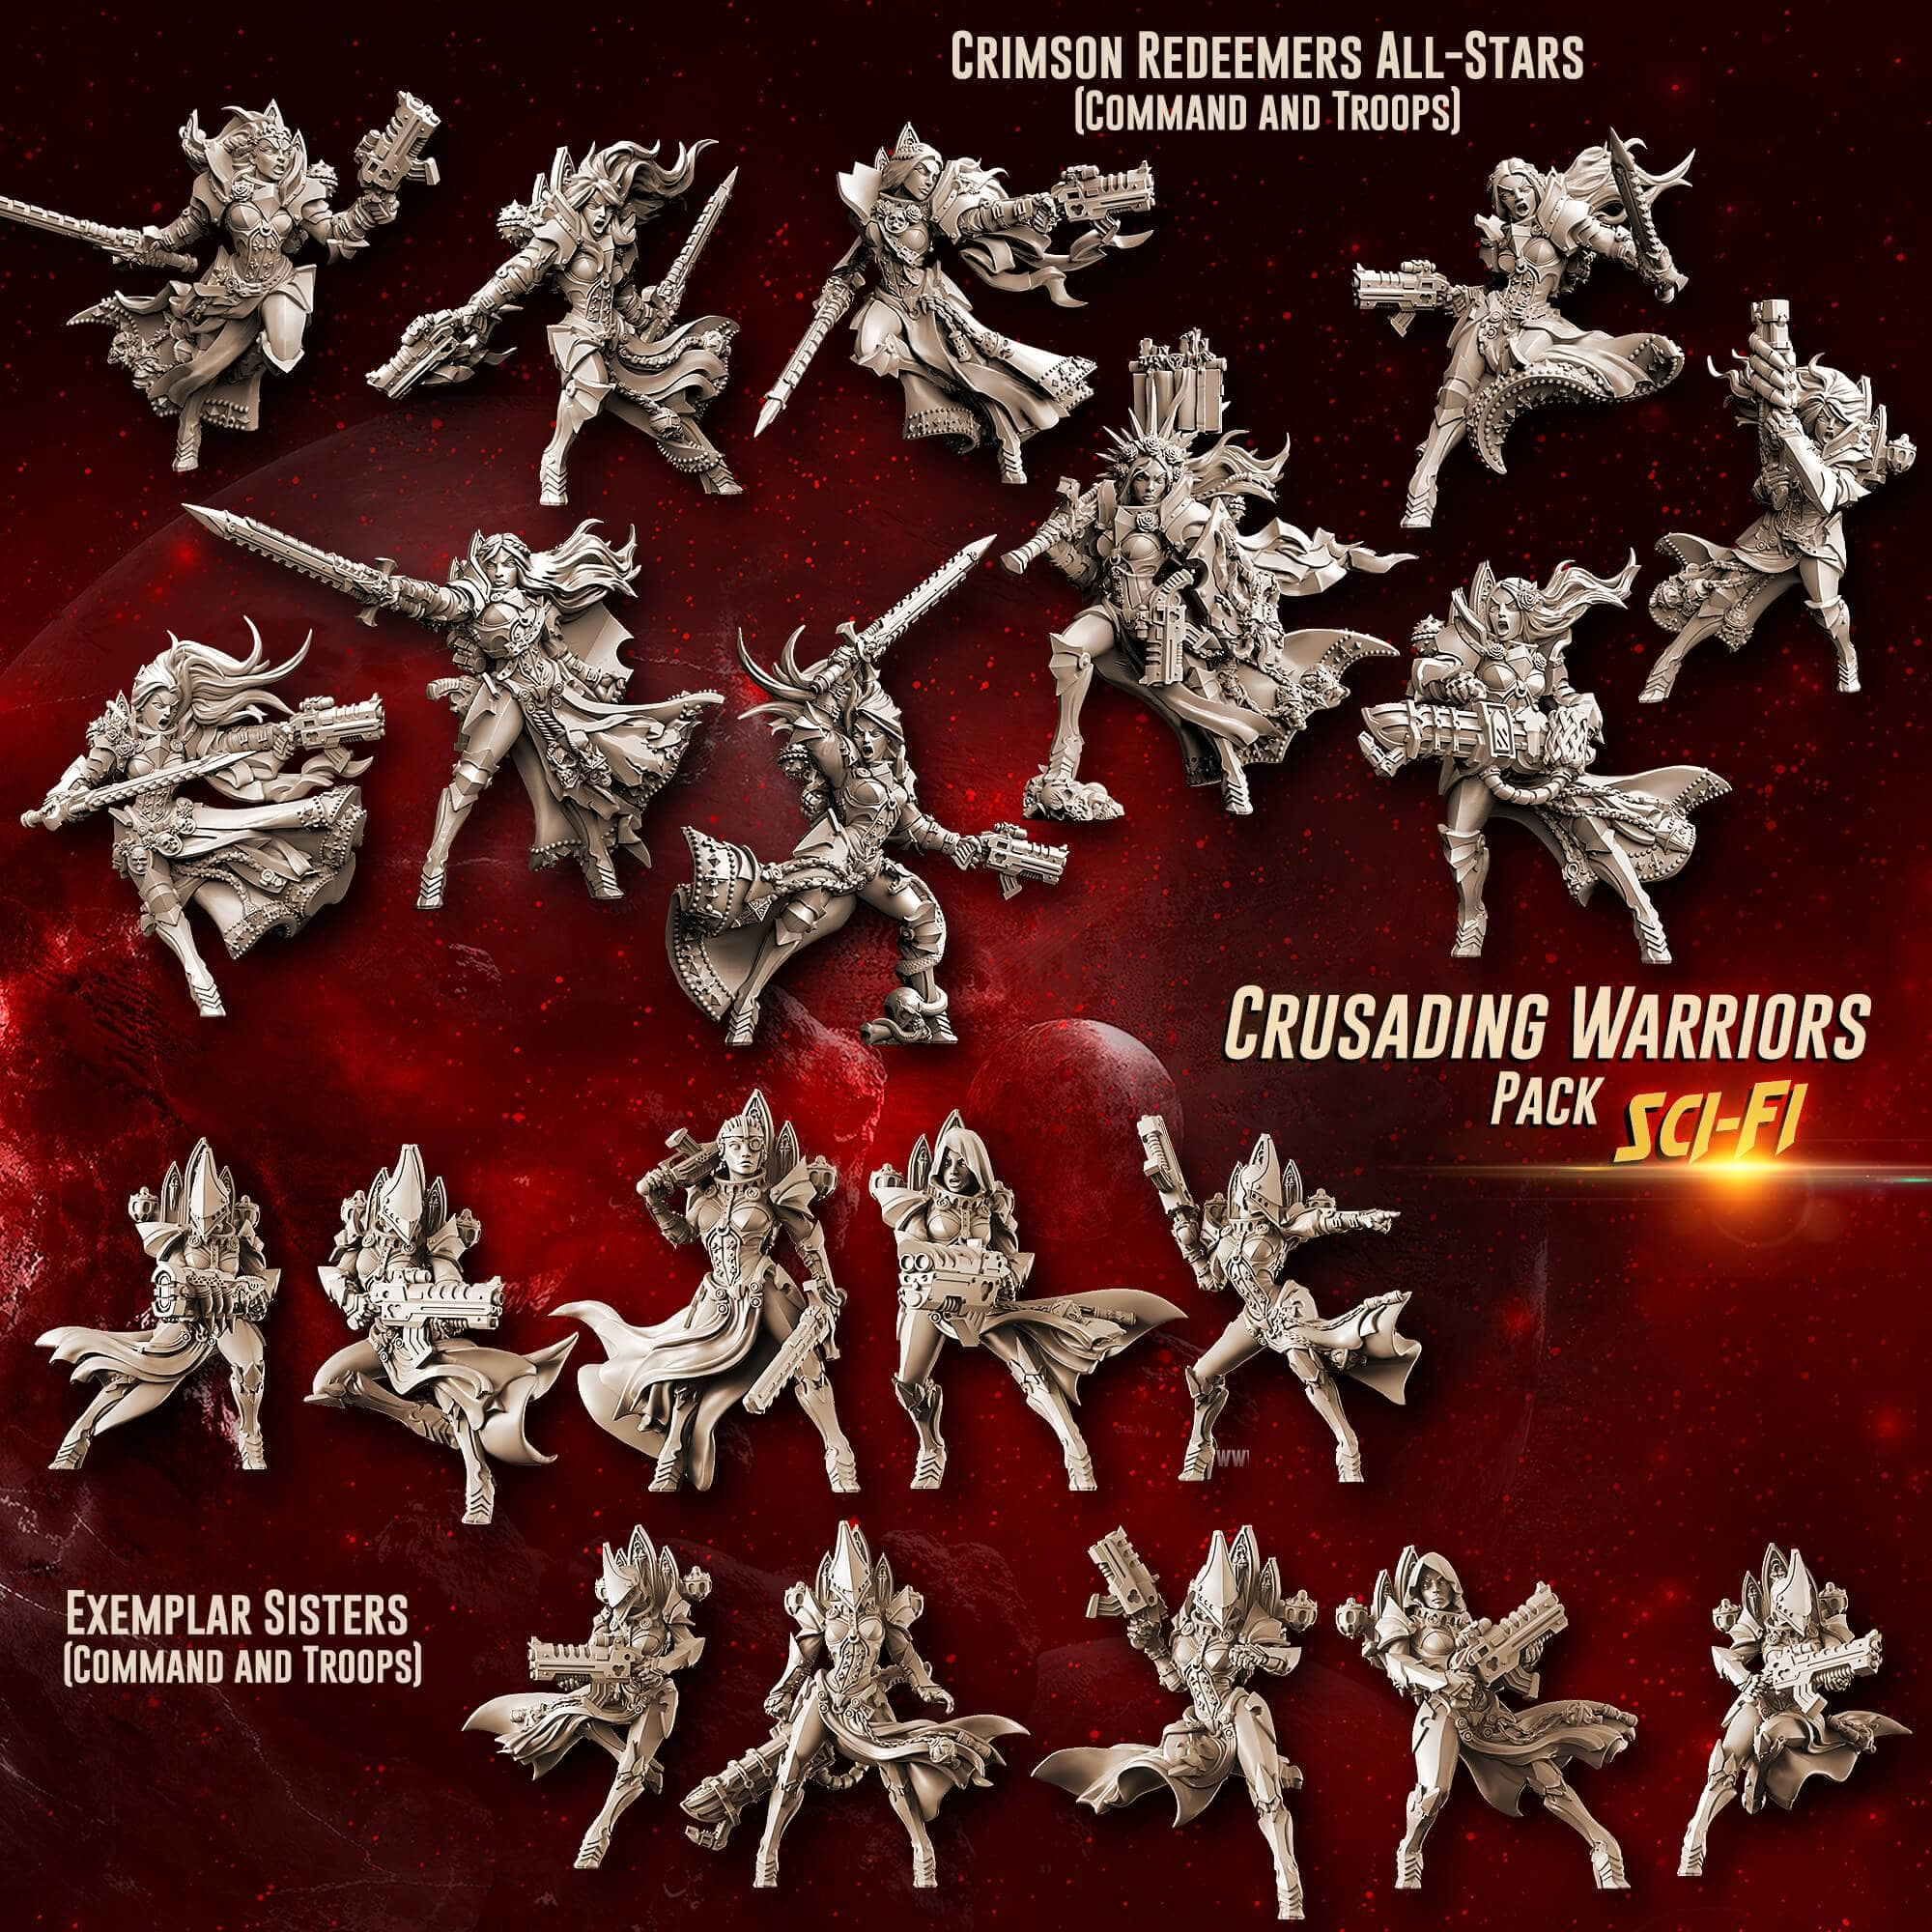 Crusading Warriors Pack (SoEM - SF) - Raging Heroes